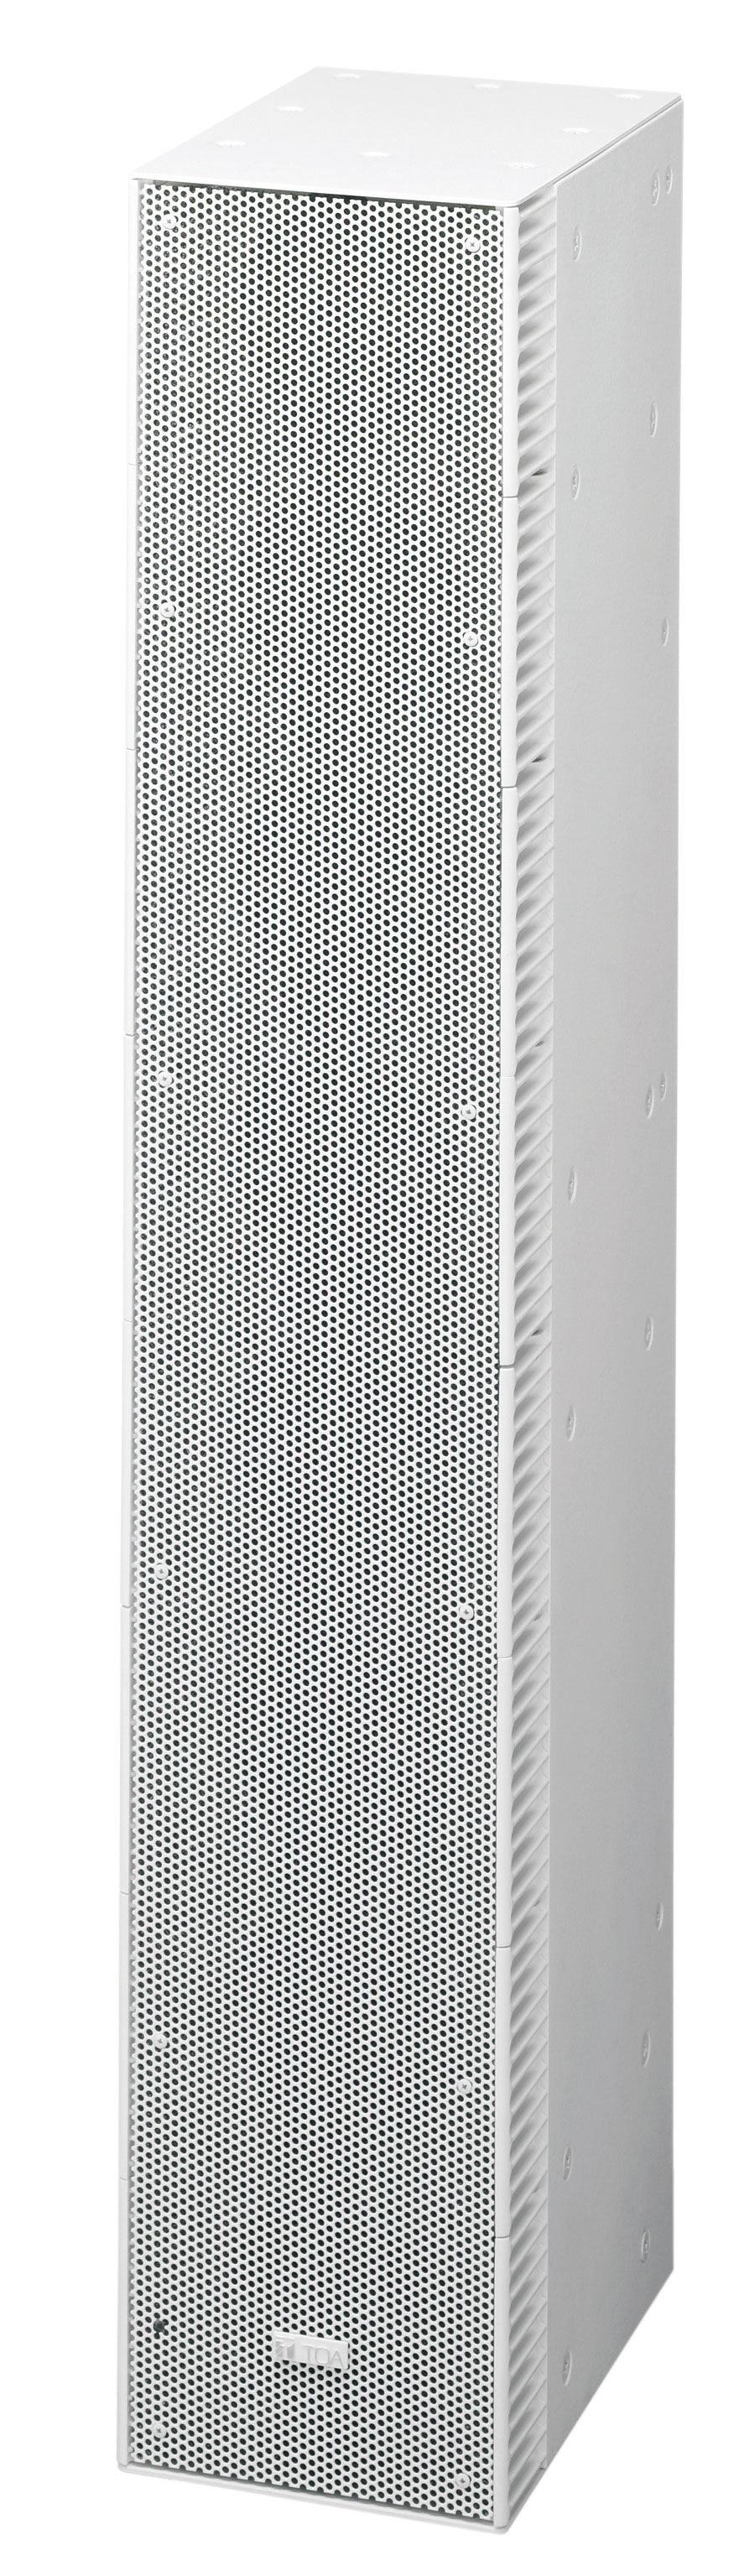 SR-D8 Active Line Array Speaker System